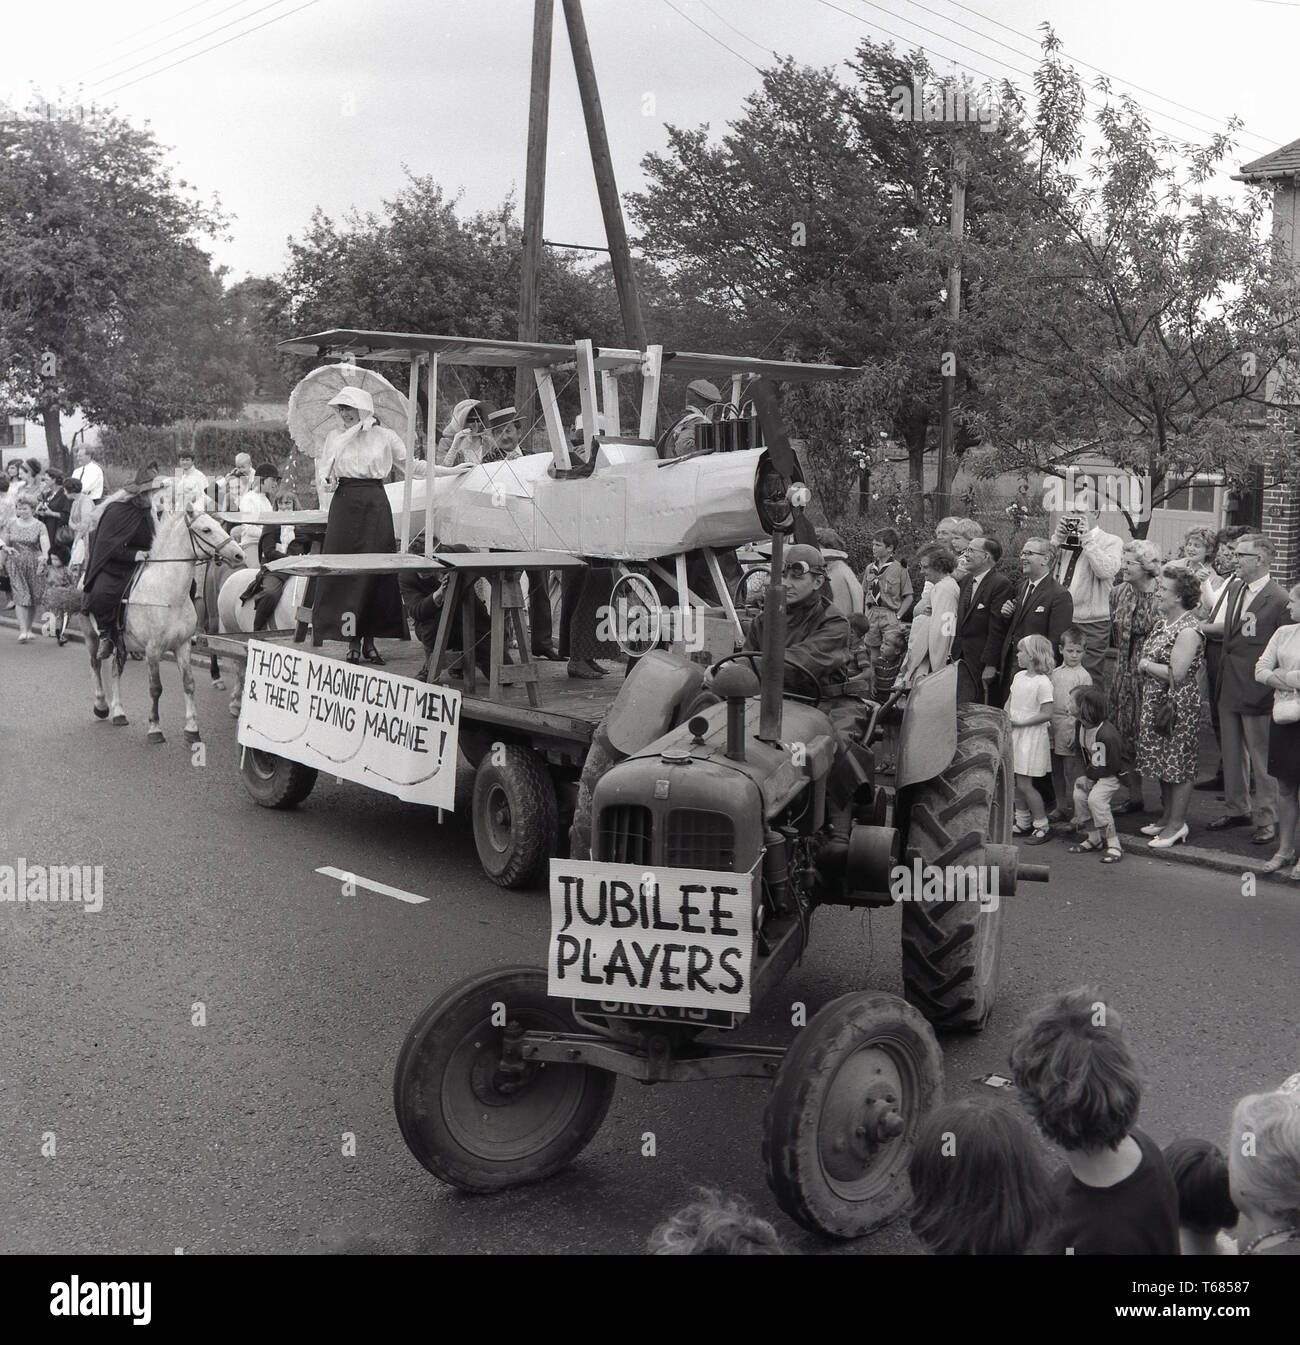 1960s, historical, spectators watch the local village carnival parade go pass, with a tractor pulling a float with a hand-made cardboard bi-plane on, followed by a witch on a horse, Prestwood, Bucks, England, UK. - Stock Image